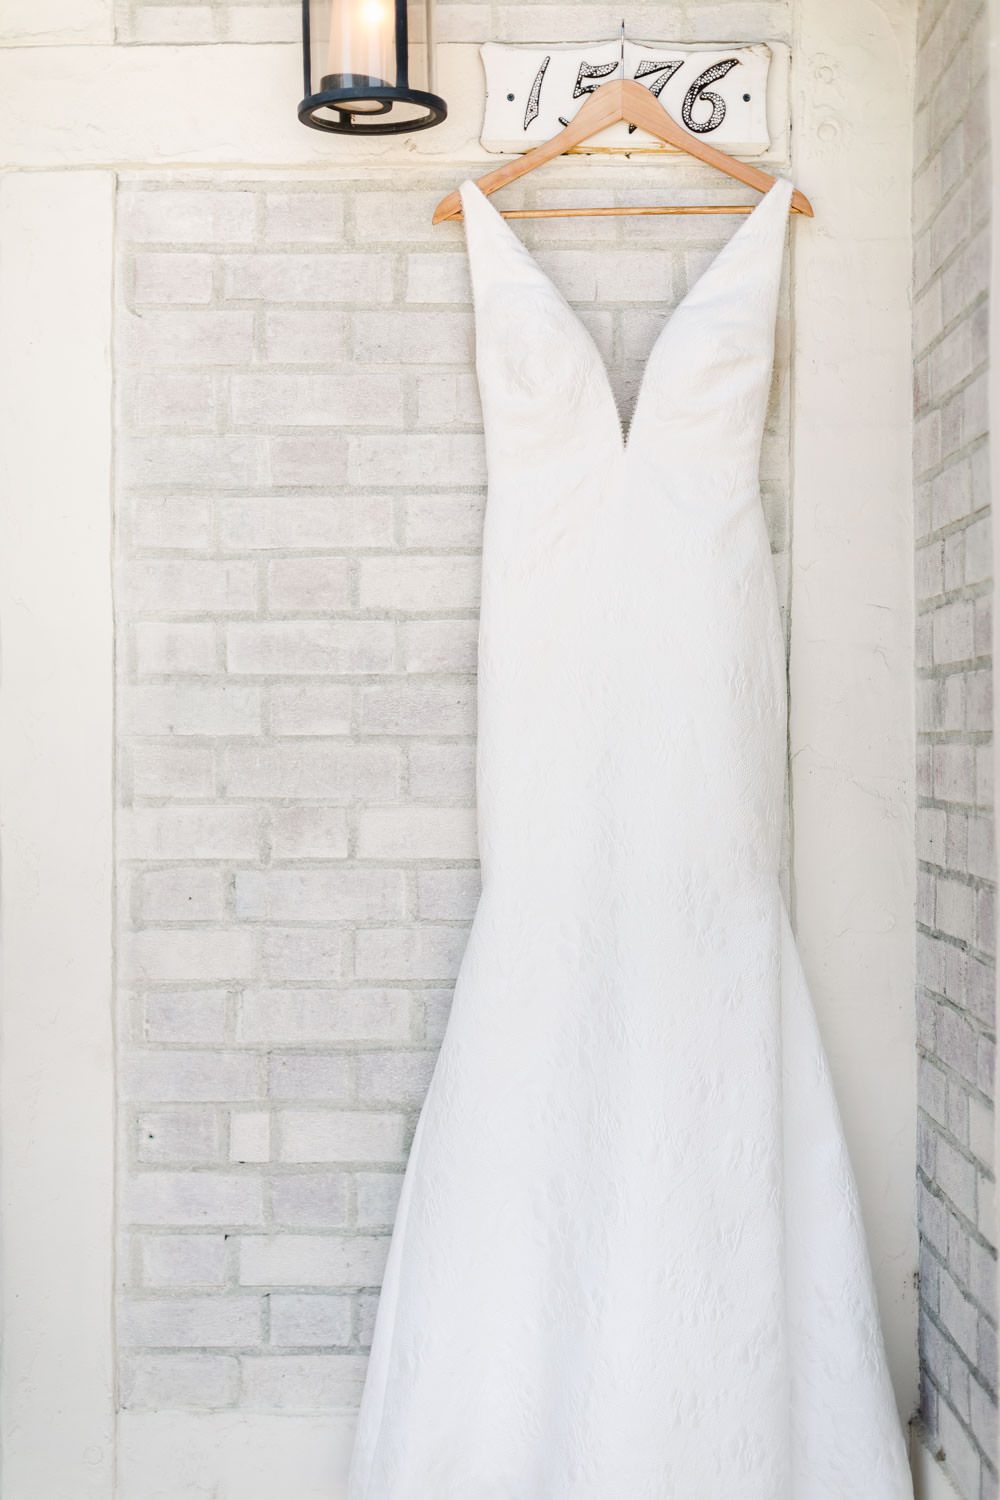 White sleeveless illusion neckline textured gown, Gainey Vineyards Wedding, Cavin Elizabeth Photography